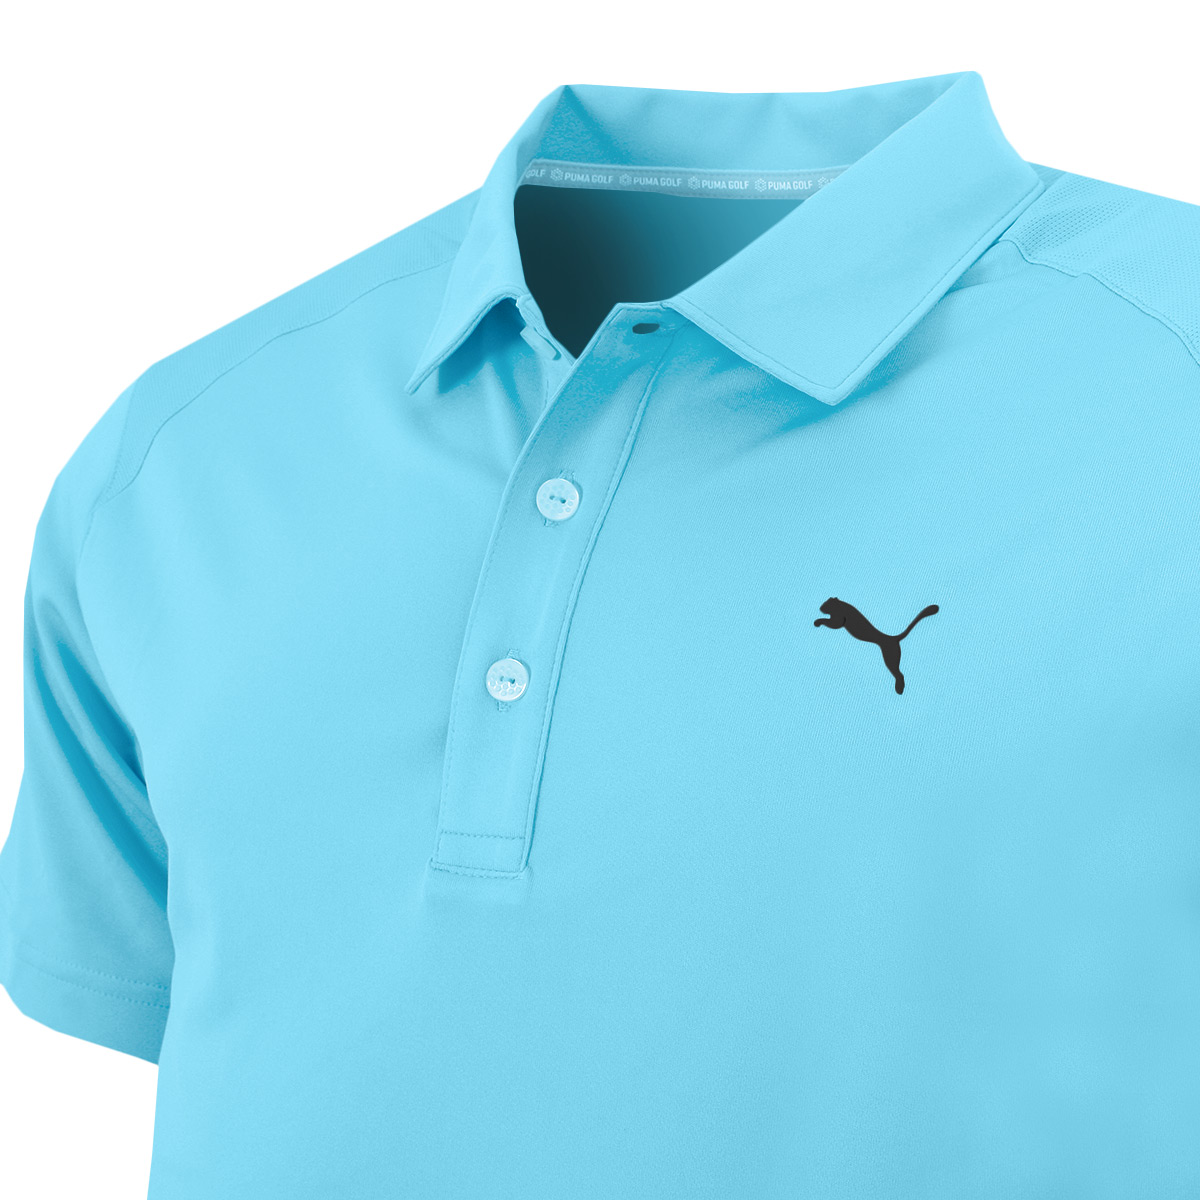 Puma-Golf-Mens-Essential-Pounce-Polo-Shirt-DryCell-Lightweight-Tech-43-OFF-RRP thumbnail 13